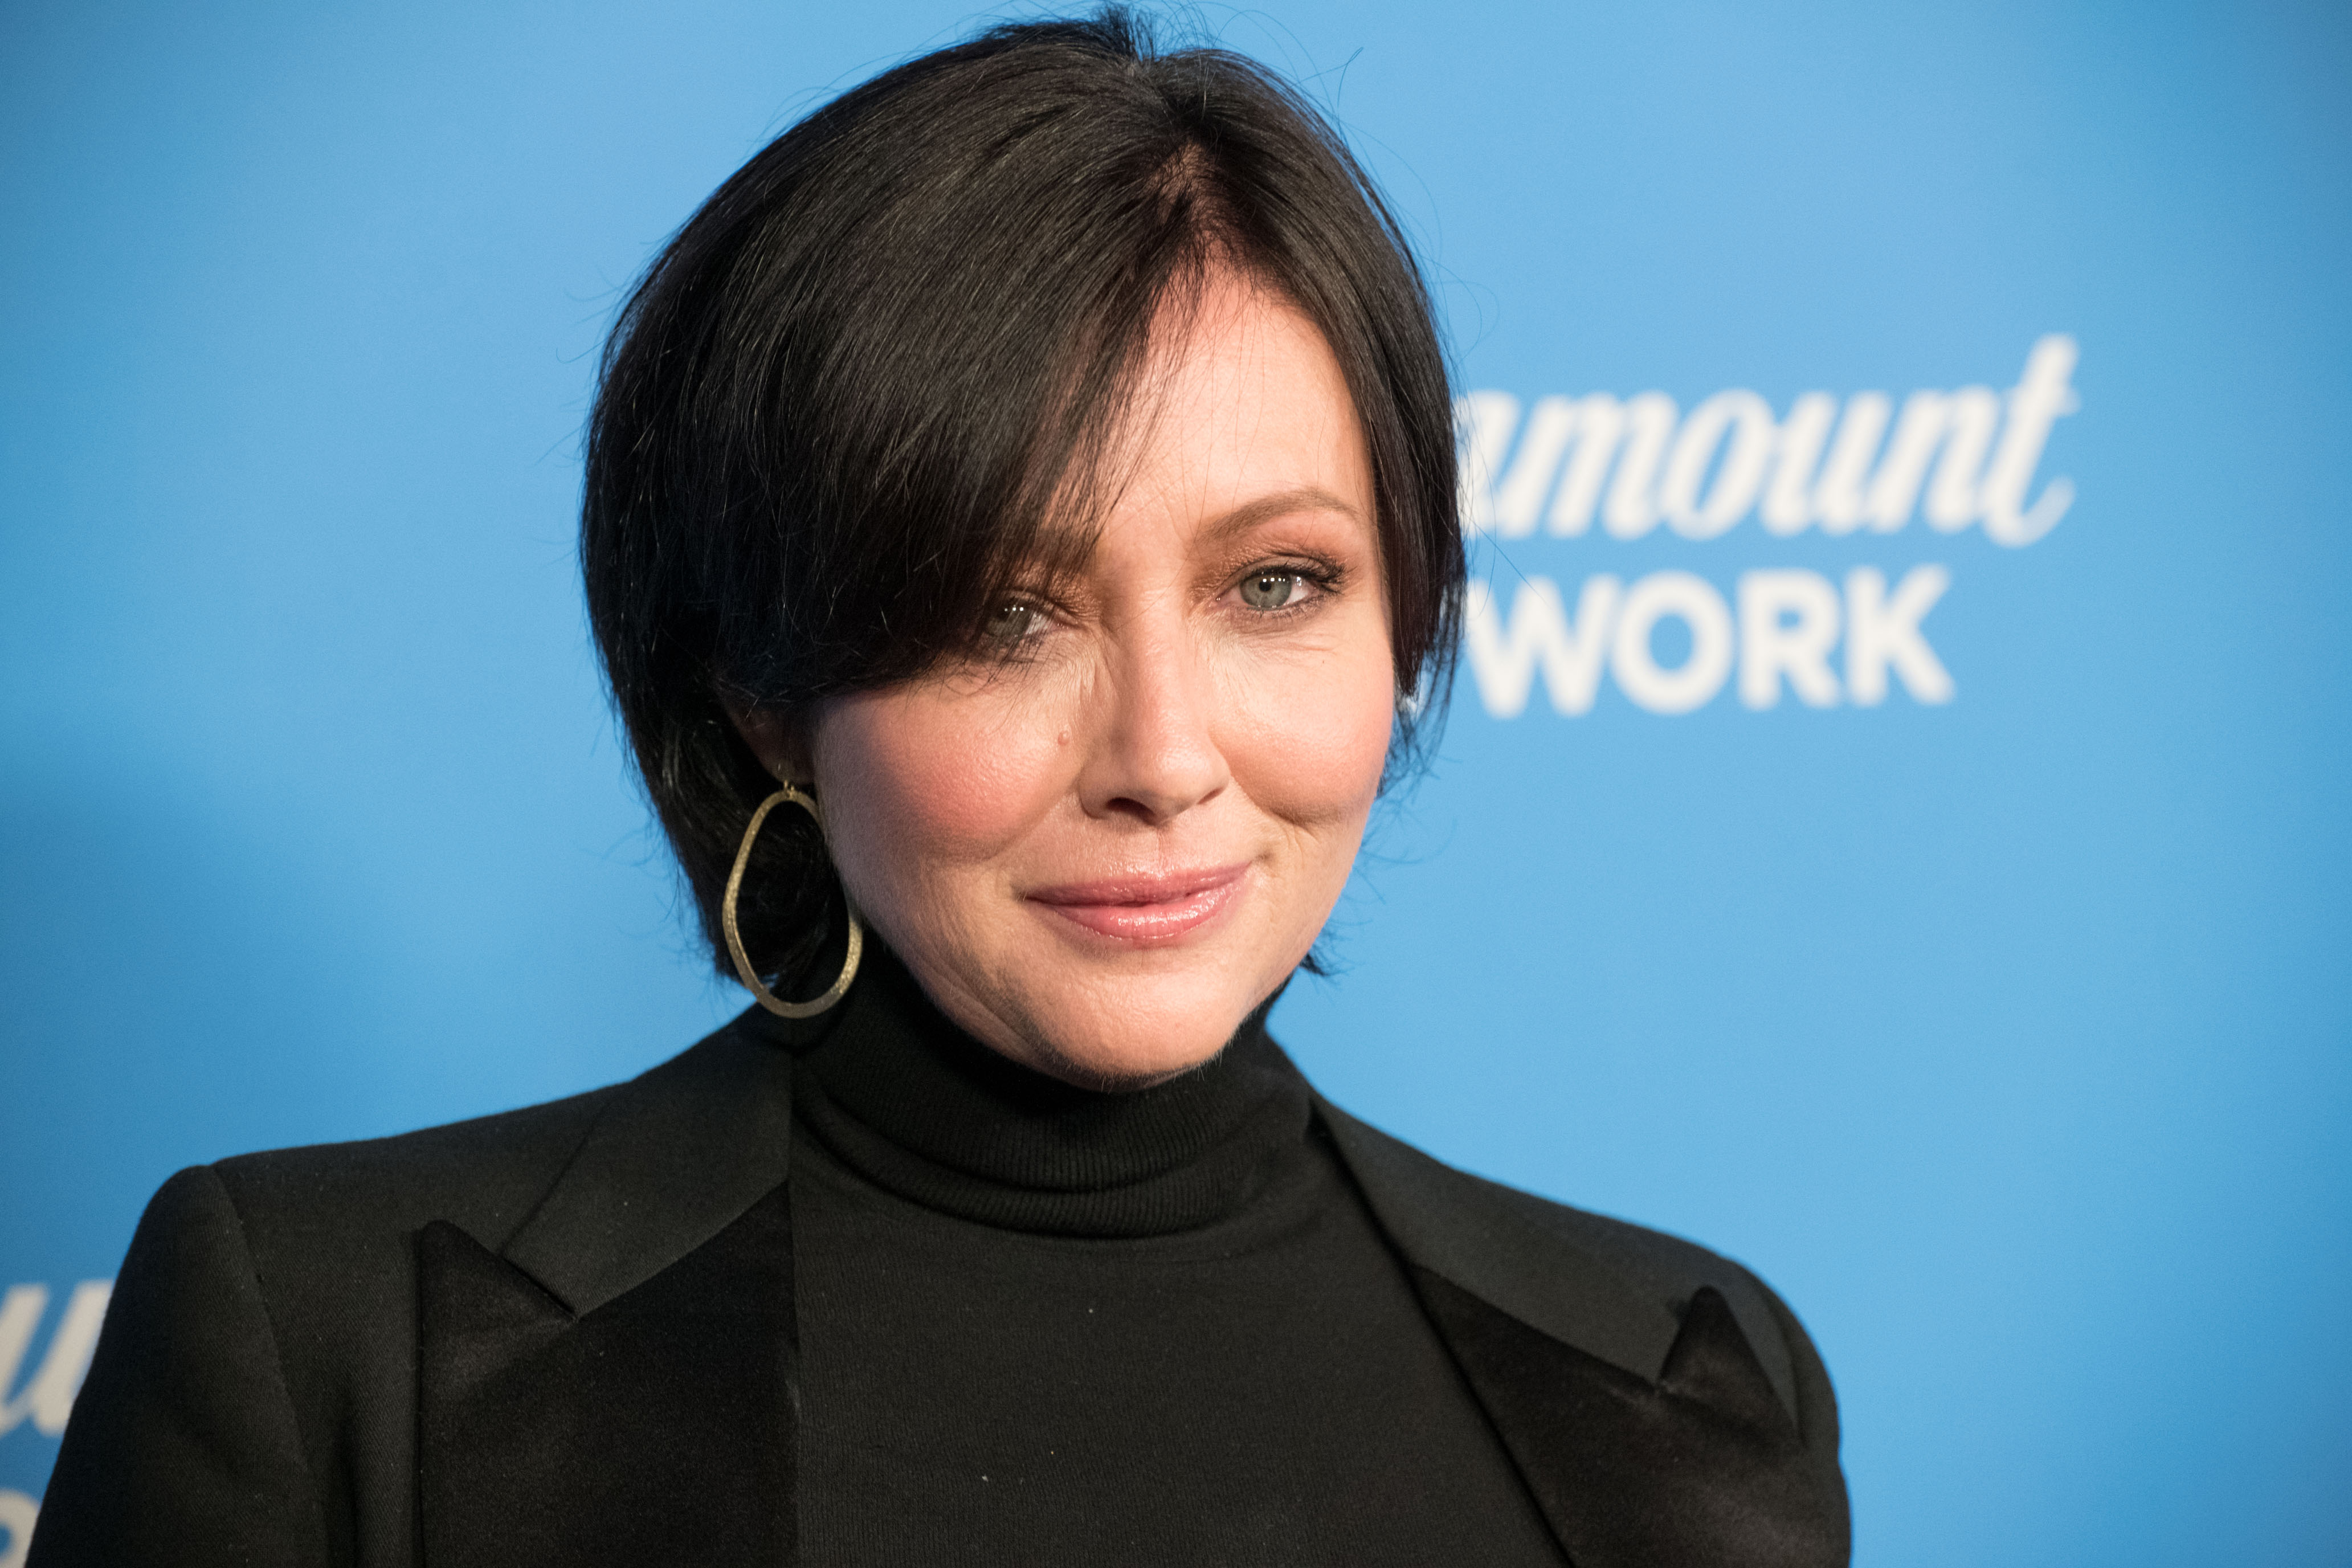 Shannen Doherty attends Paramount Network Launch Party at Sunset Tower on January 18, 2018 | Photo: GettyImages